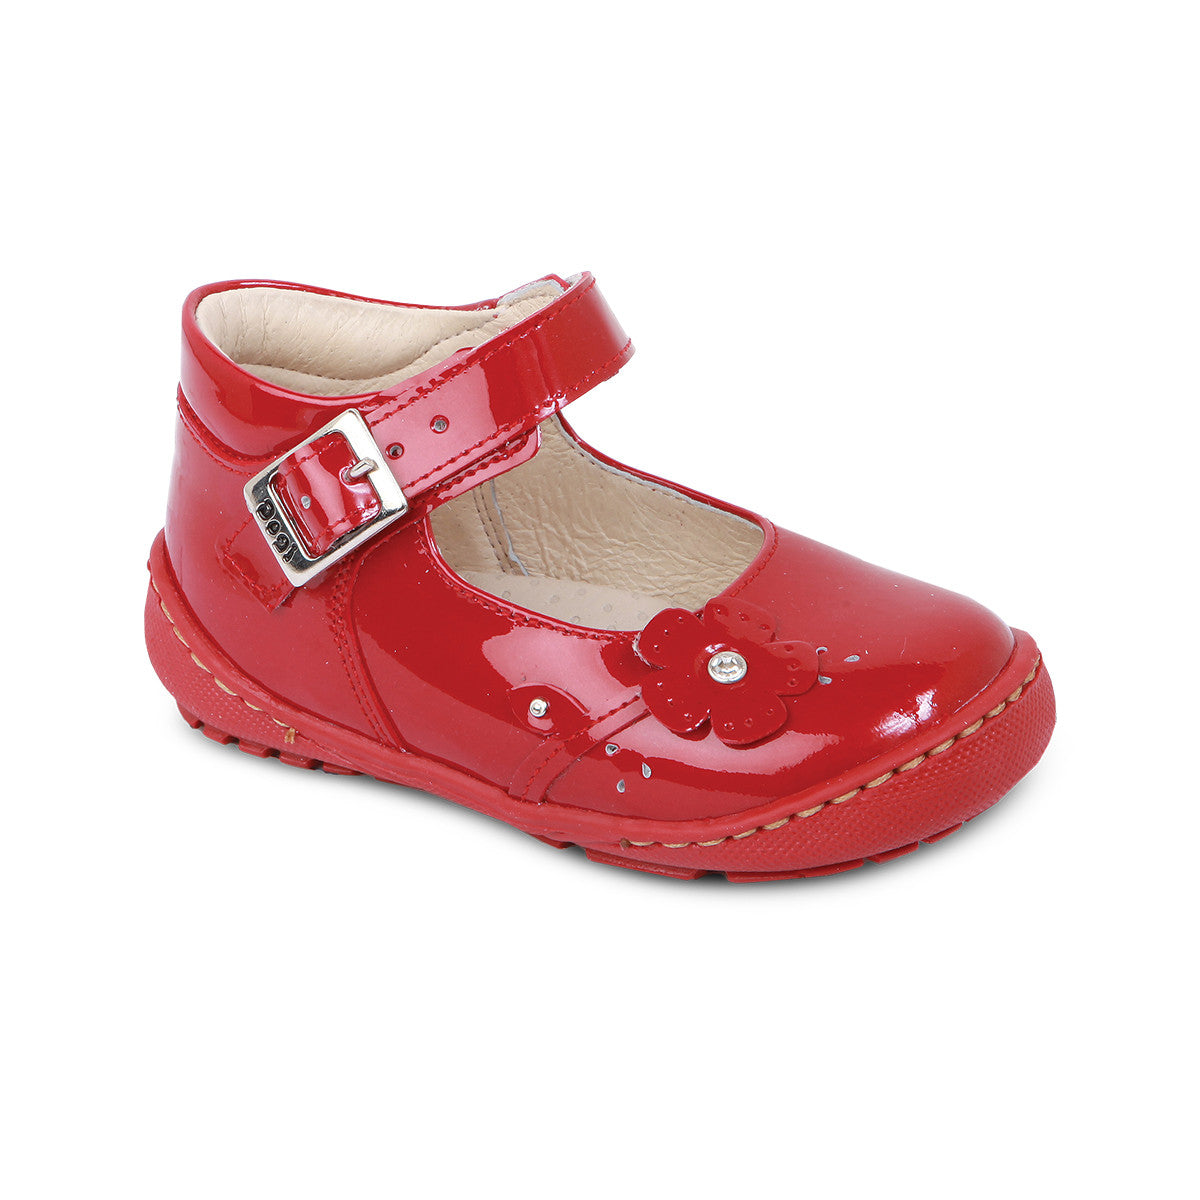 Ruby Red Shoes For Sale